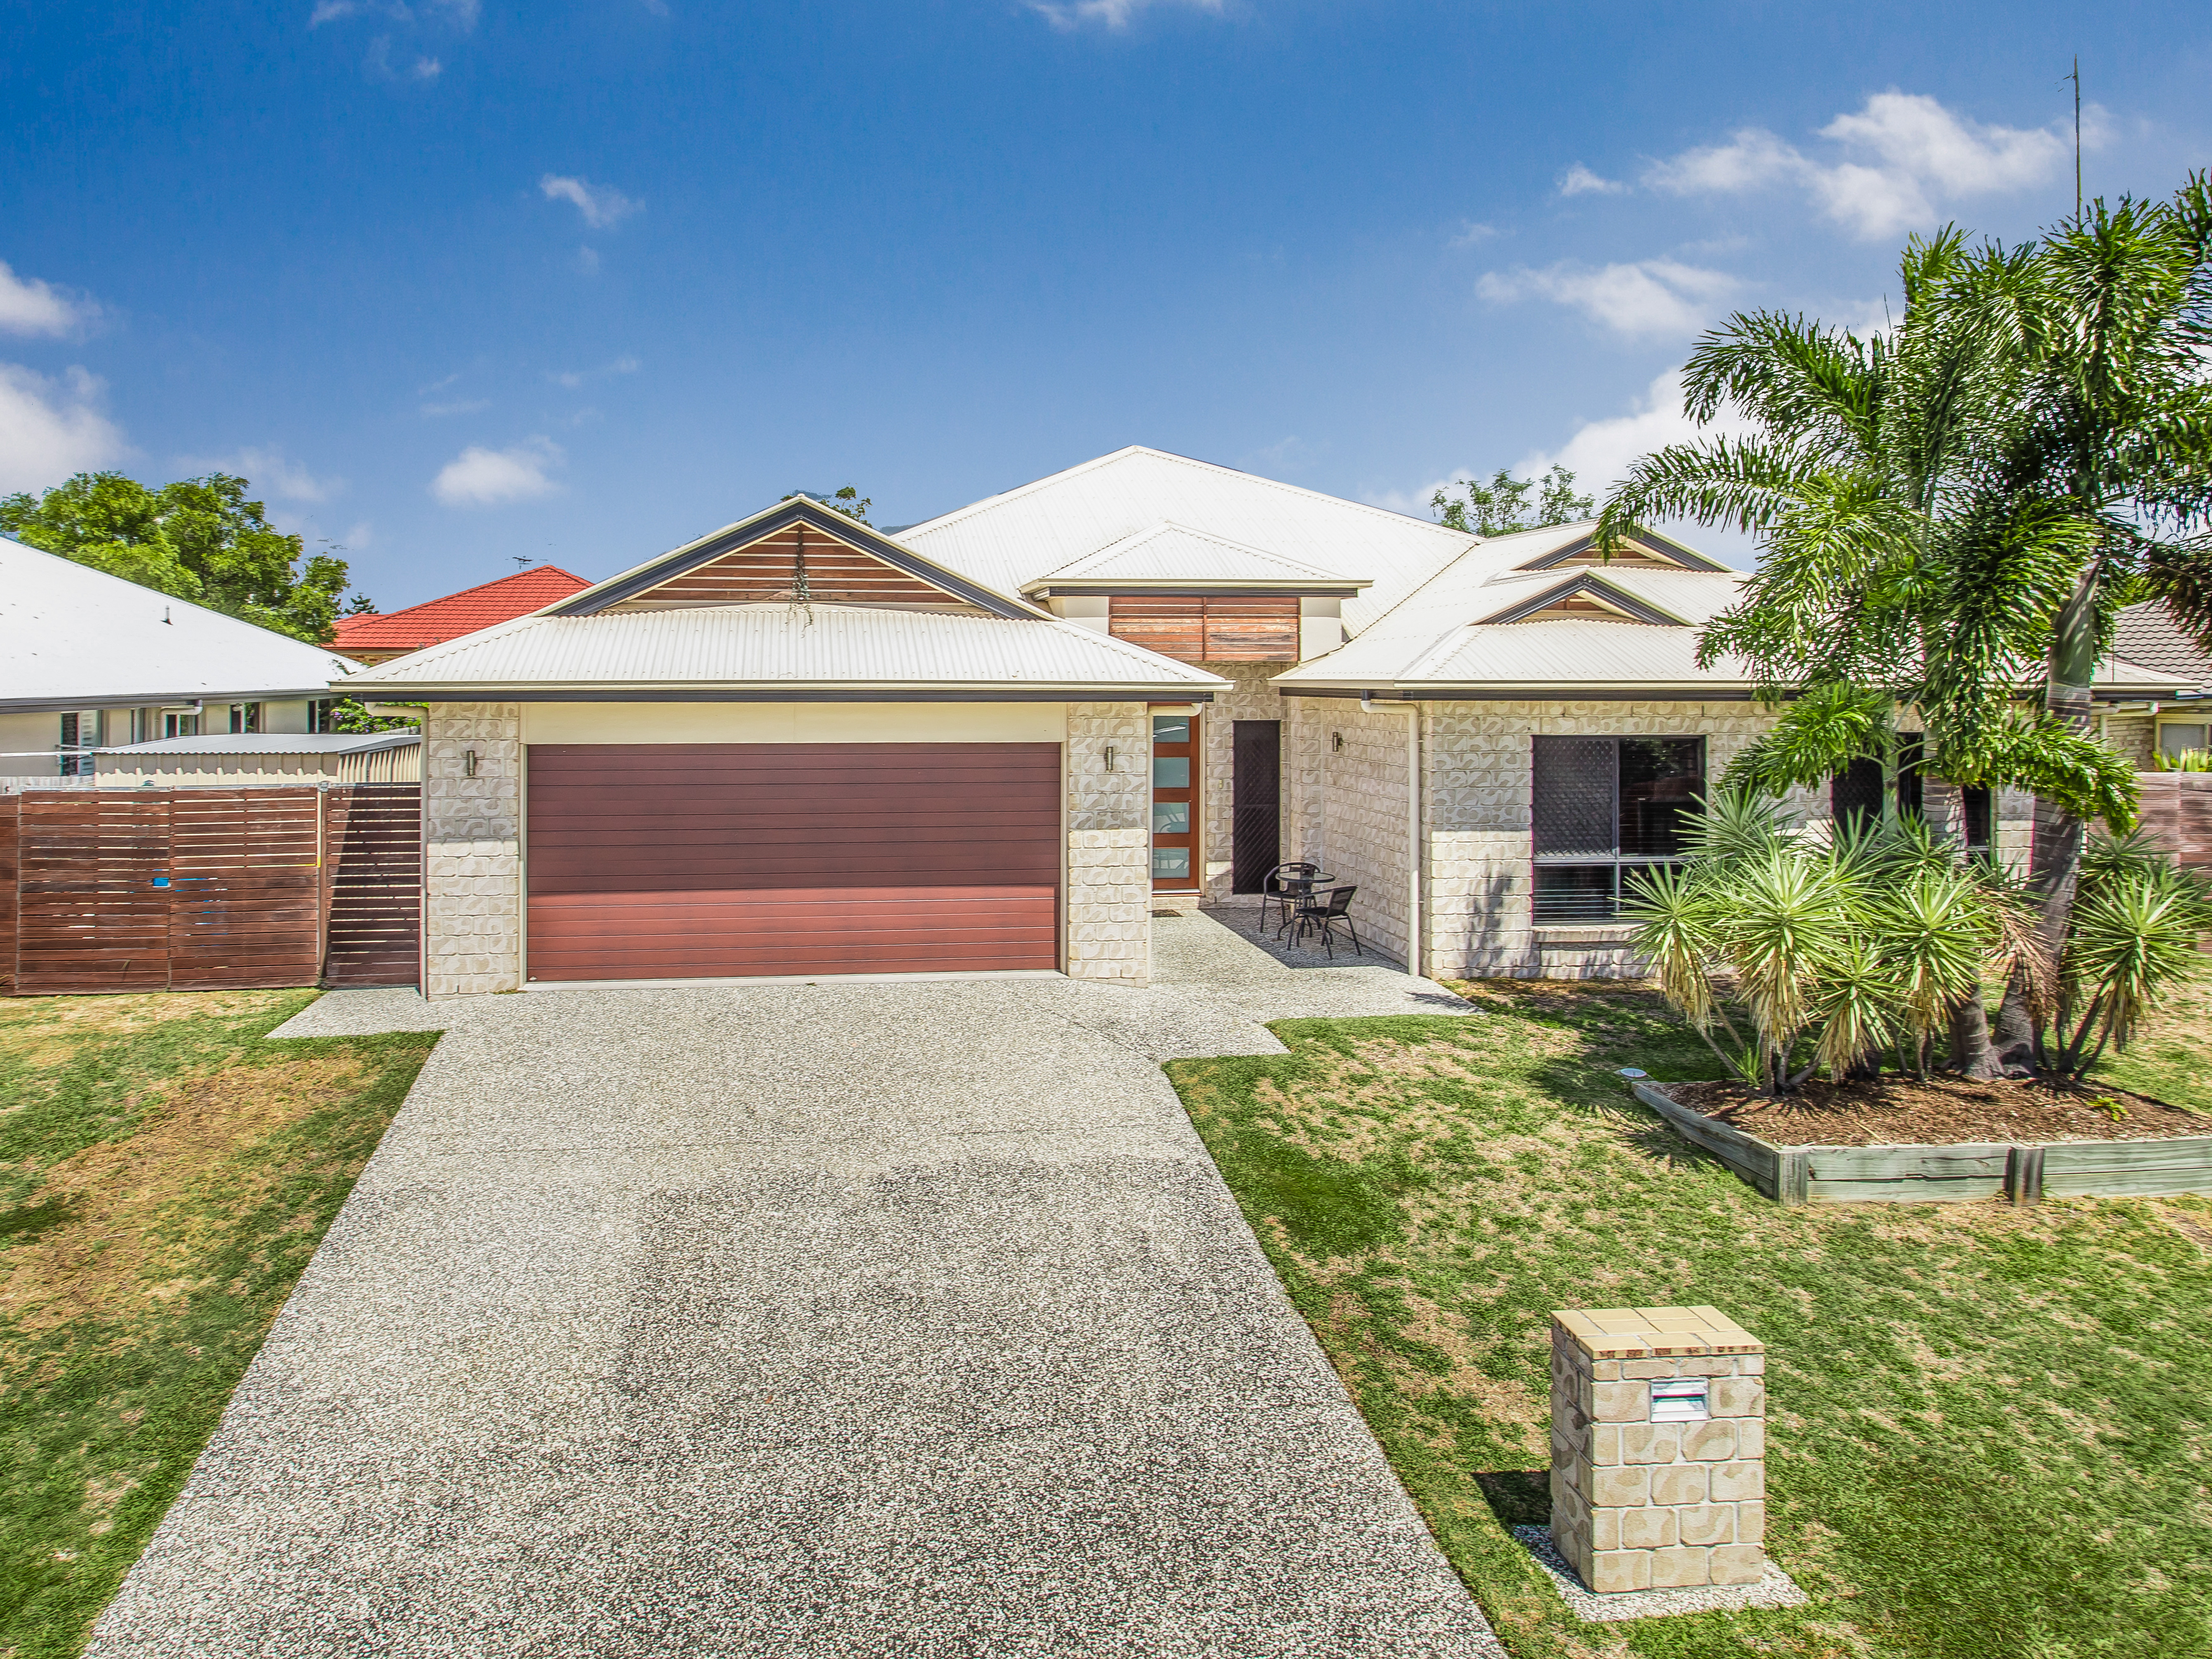 FOR SALE - 11 Allister Cres, Rothwell